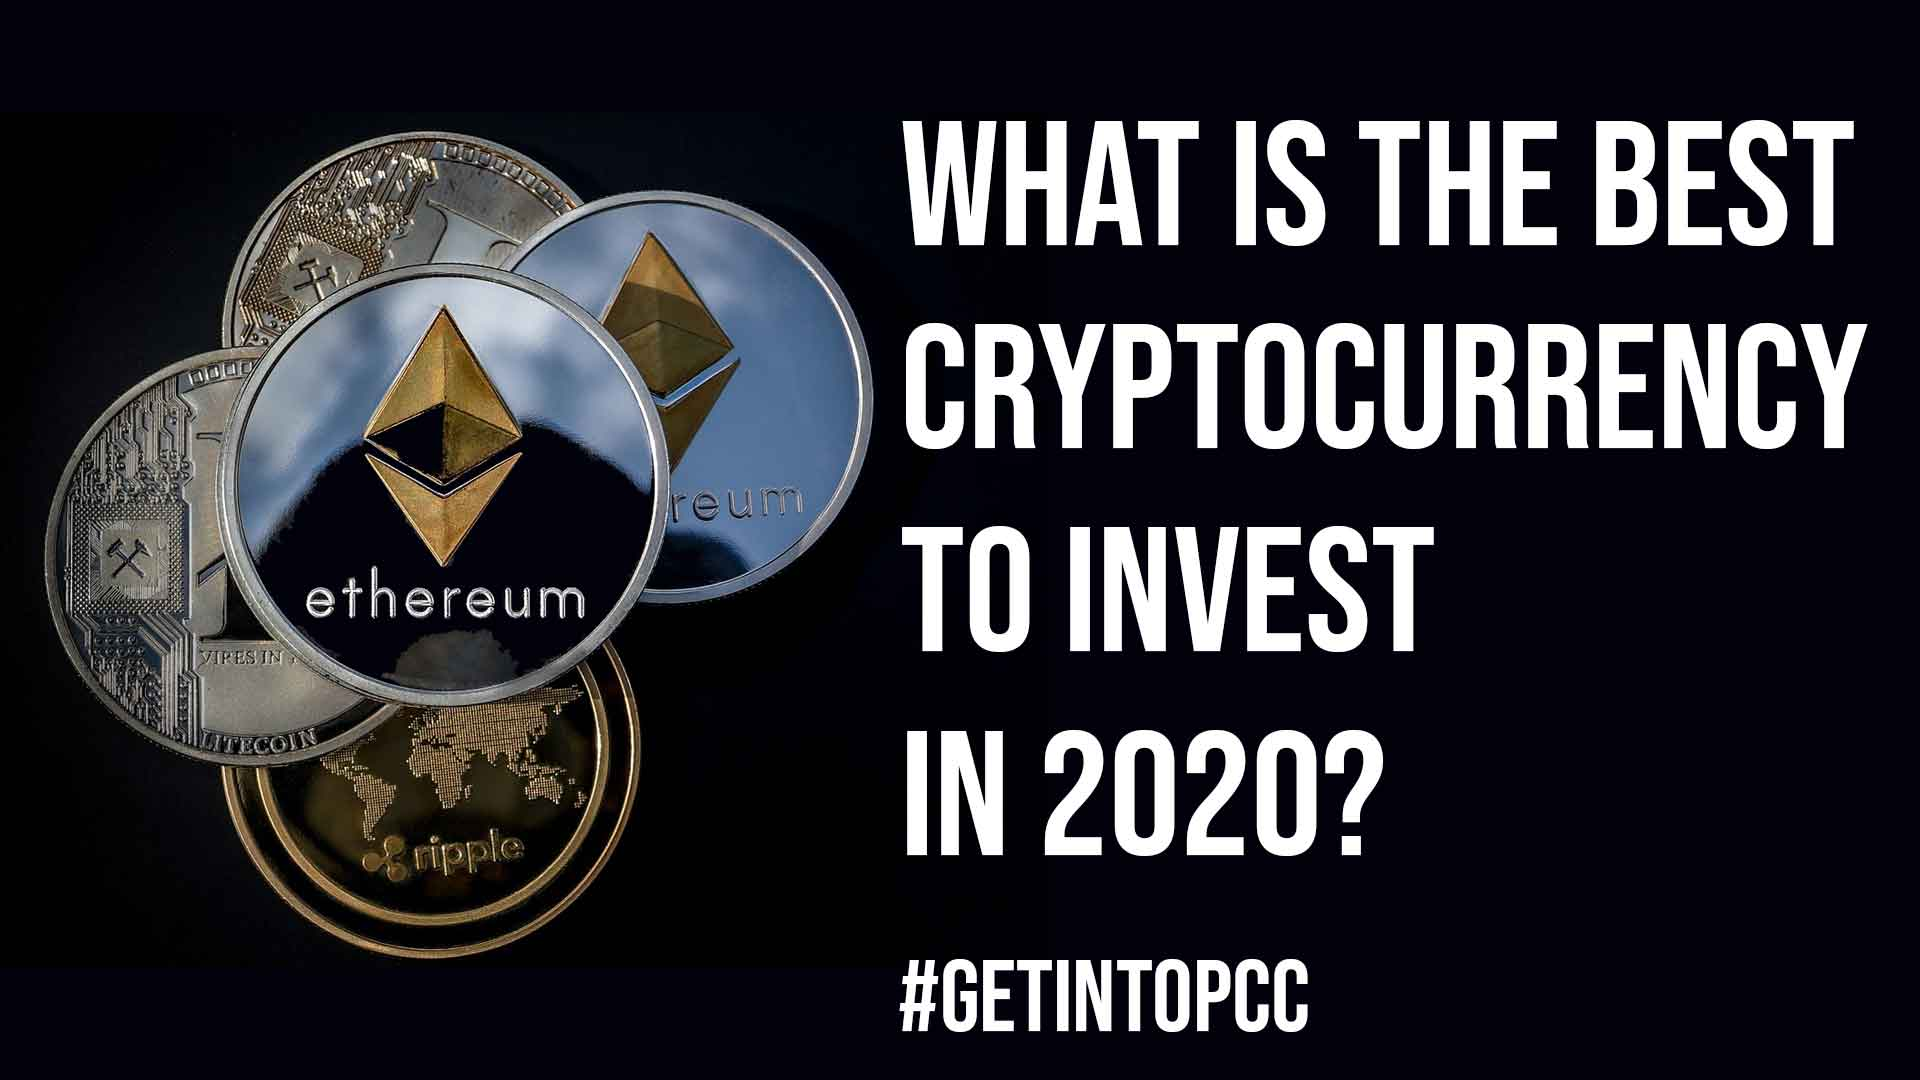 What is the Best Cryptocurrency to Invest in 2020